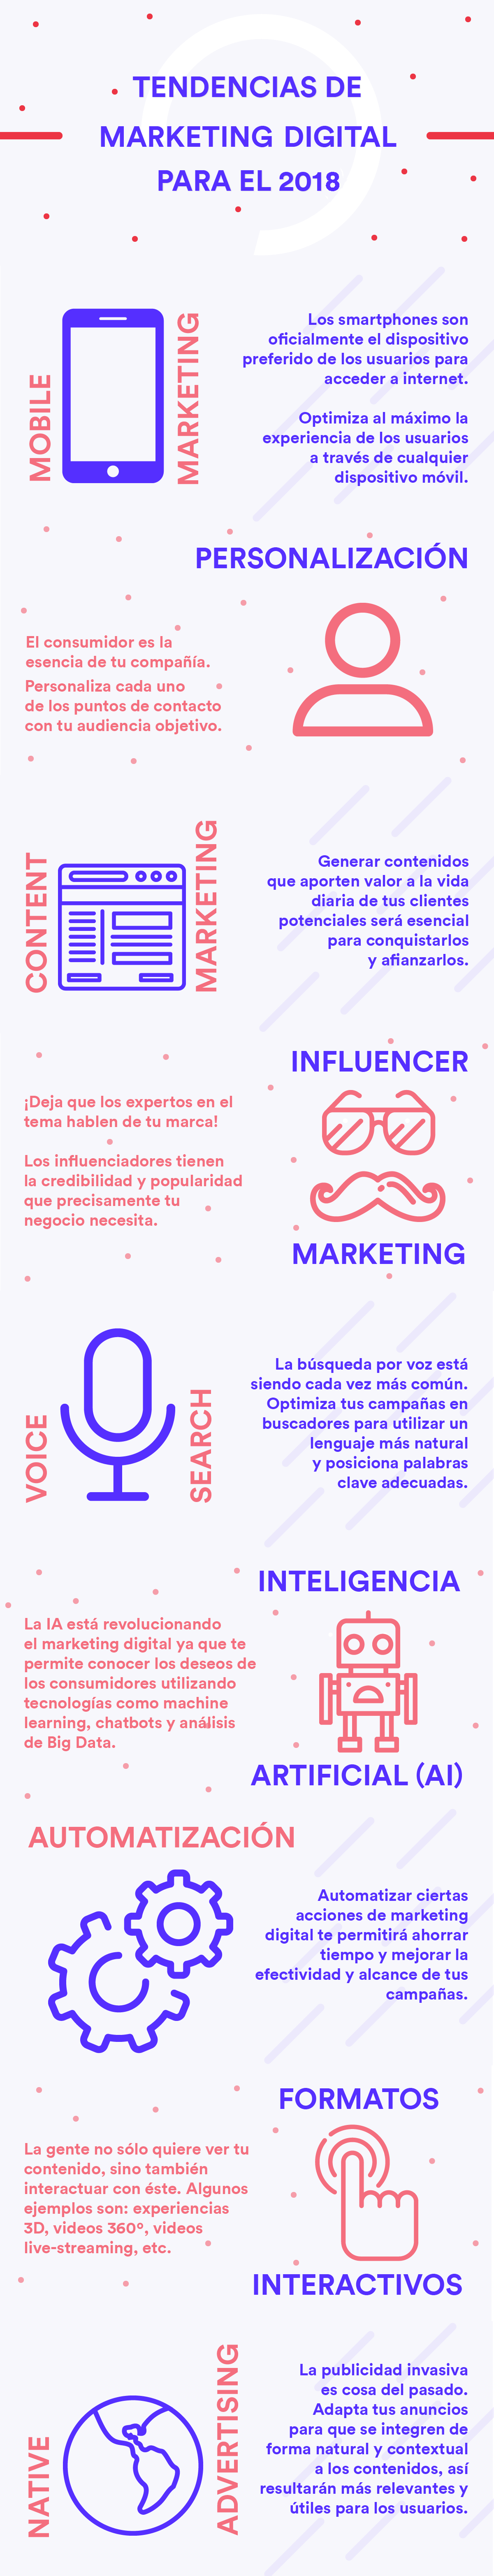 tendencias-marketing-digital-2018-1.png